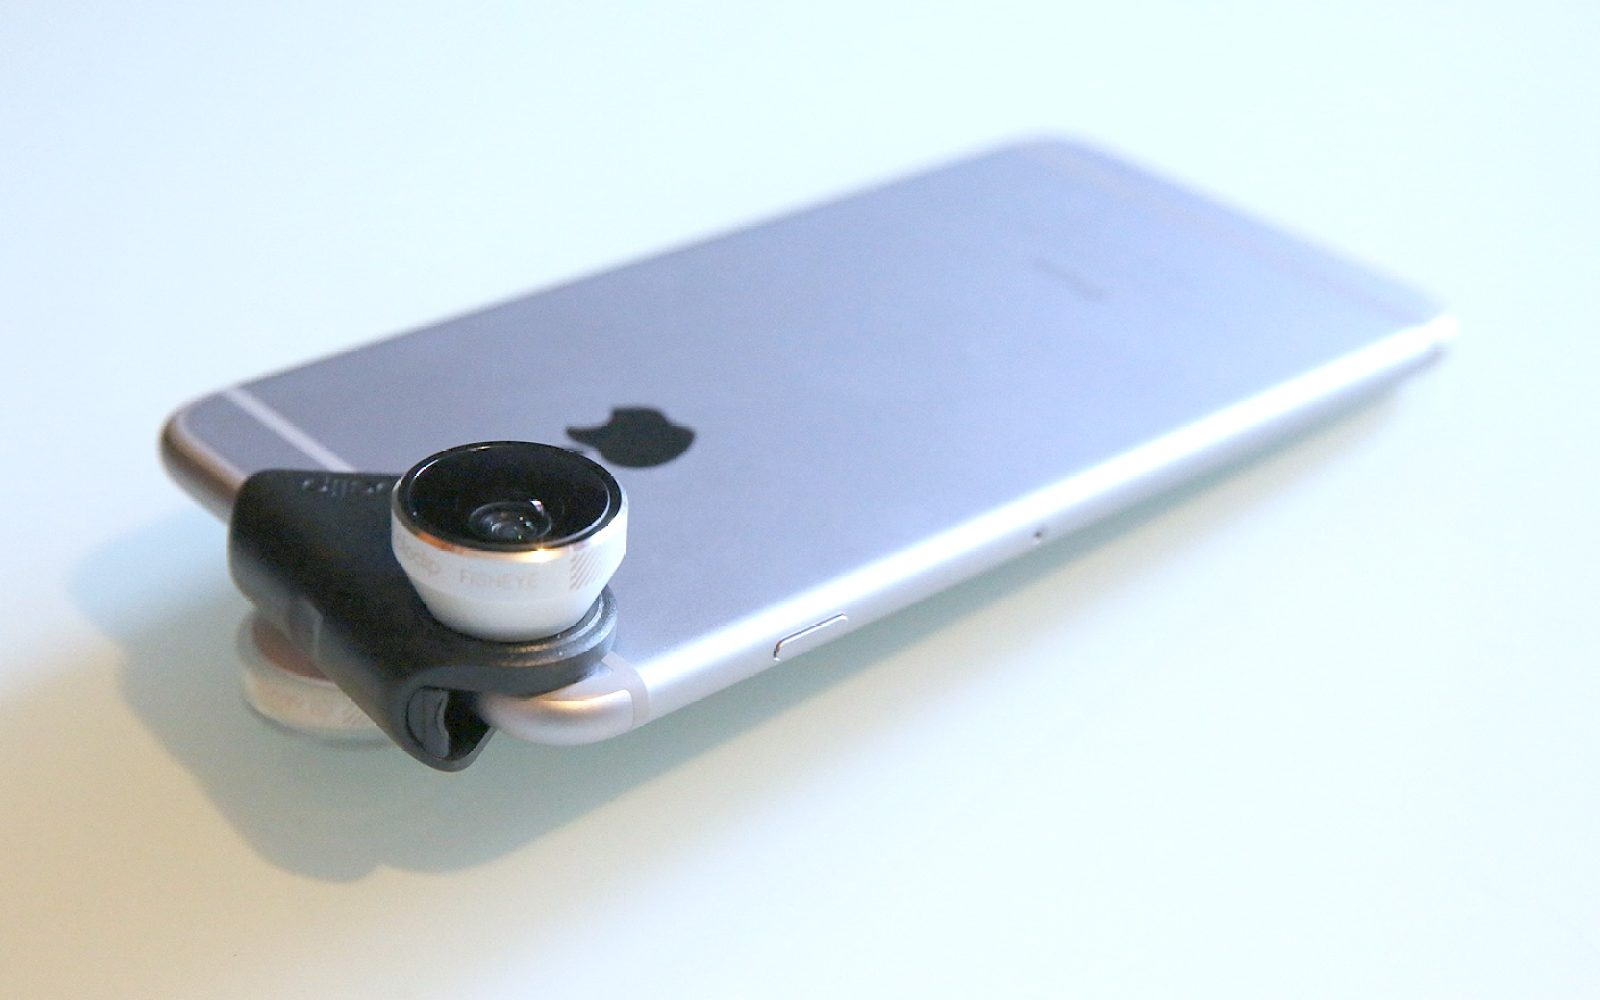 sale retailer 0d70d a7c4b Review: Olloclip 4-in-1 Lens for iPhone 6/6 Plus hangs wide-angle + ...